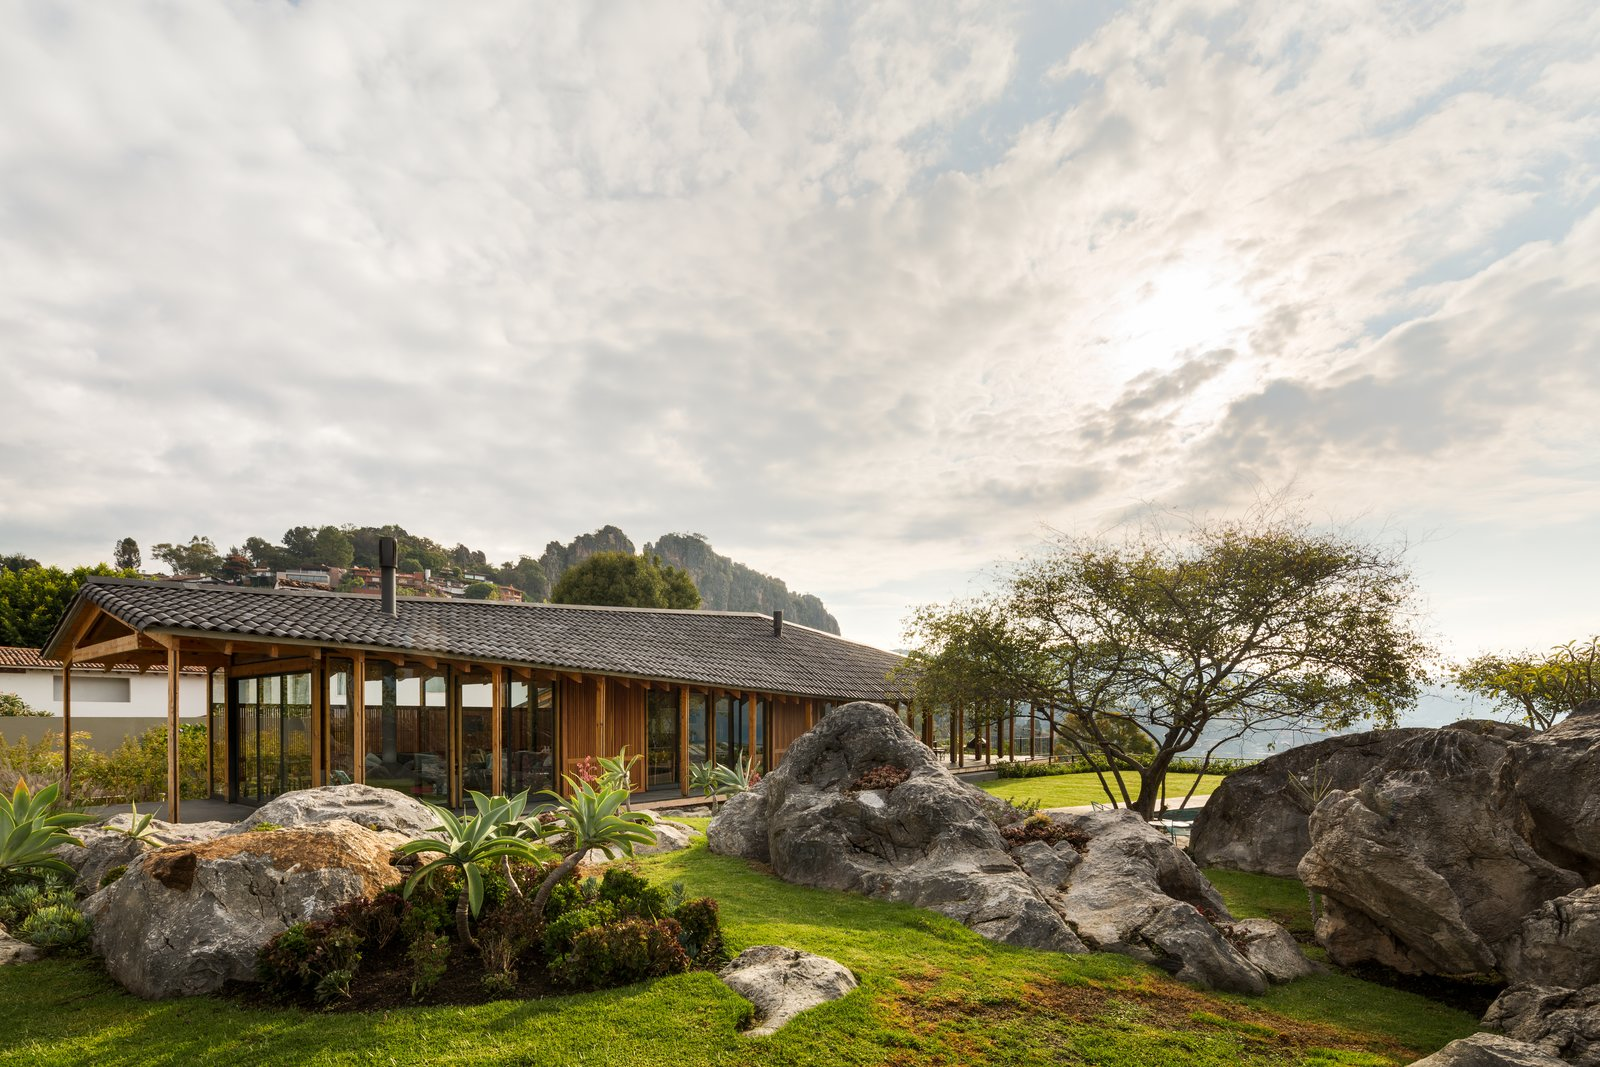 CMV House is perched among the rugged boulders of the scenic Valle de Bravo, where it manages to stand out without overwhelming the site's natural beauty.